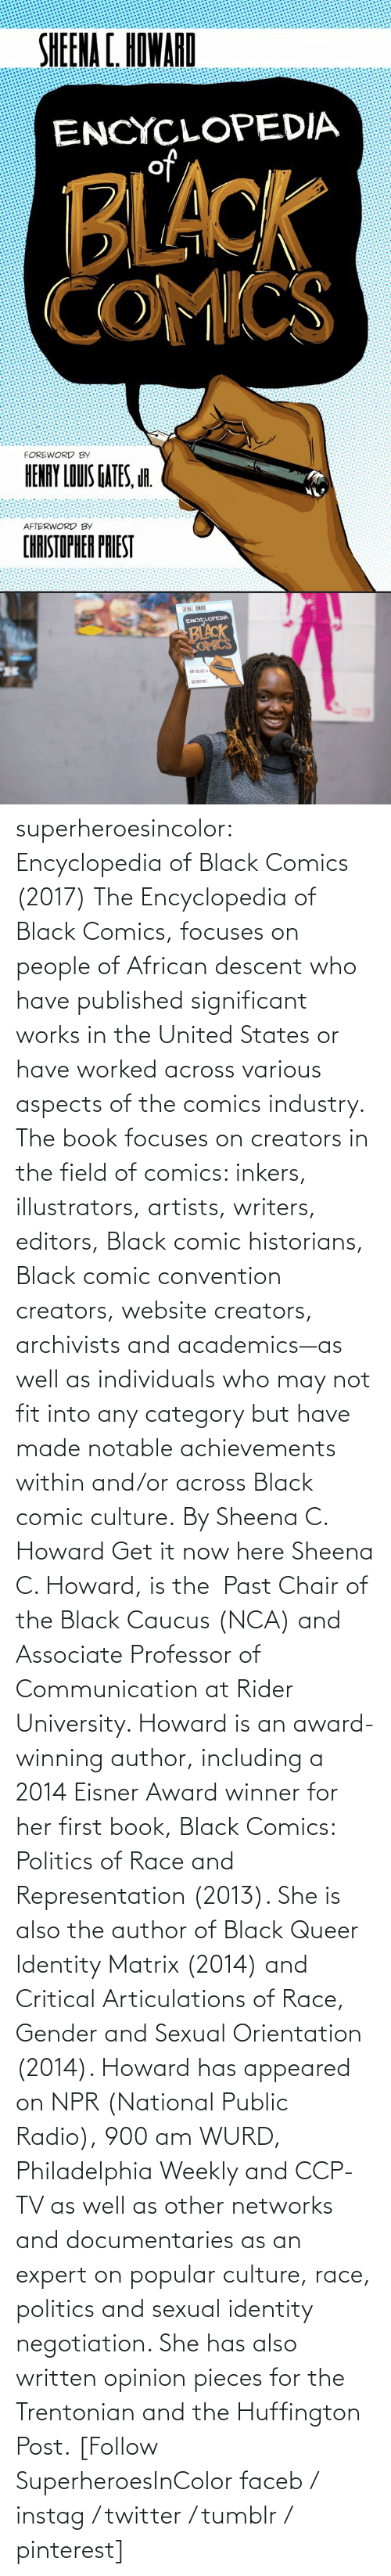 Instagram: superheroesincolor: Encyclopedia of Black Comics (2017) The Encyclopedia of Black Comics, focuses on people of African descent who have published significant works in the United States or have worked across various aspects of the comics industry.  The book focuses on creators in the field of comics: inkers, illustrators, artists, writers, editors, Black comic historians, Black comic convention creators, website creators, archivists and academics—as well as individuals who may not fit into any category but have made notable achievements within and/or across Black comic culture. By Sheena C. Howard Get it now here  Sheena C. Howard, is the  Past Chair of the Black Caucus (NCA) and Associate Professor of Communication at Rider University. Howard is an award-winning author, including a 2014 Eisner Award winner for her first book, Black Comics: Politics of Race and Representation (2013). She is also the author of Black Queer Identity Matrix (2014) and Critical Articulations of Race, Gender and Sexual Orientation (2014). Howard has appeared on NPR (National Public Radio), 900 am WURD, Philadelphia Weekly and CCP-TV as well as other networks and documentaries as an expert on popular culture, race, politics and sexual identity negotiation. She has also written opinion pieces for the Trentonian and the Huffington Post.   [Follow SuperheroesInColor faceb / instag / twitter / tumblr / pinterest]